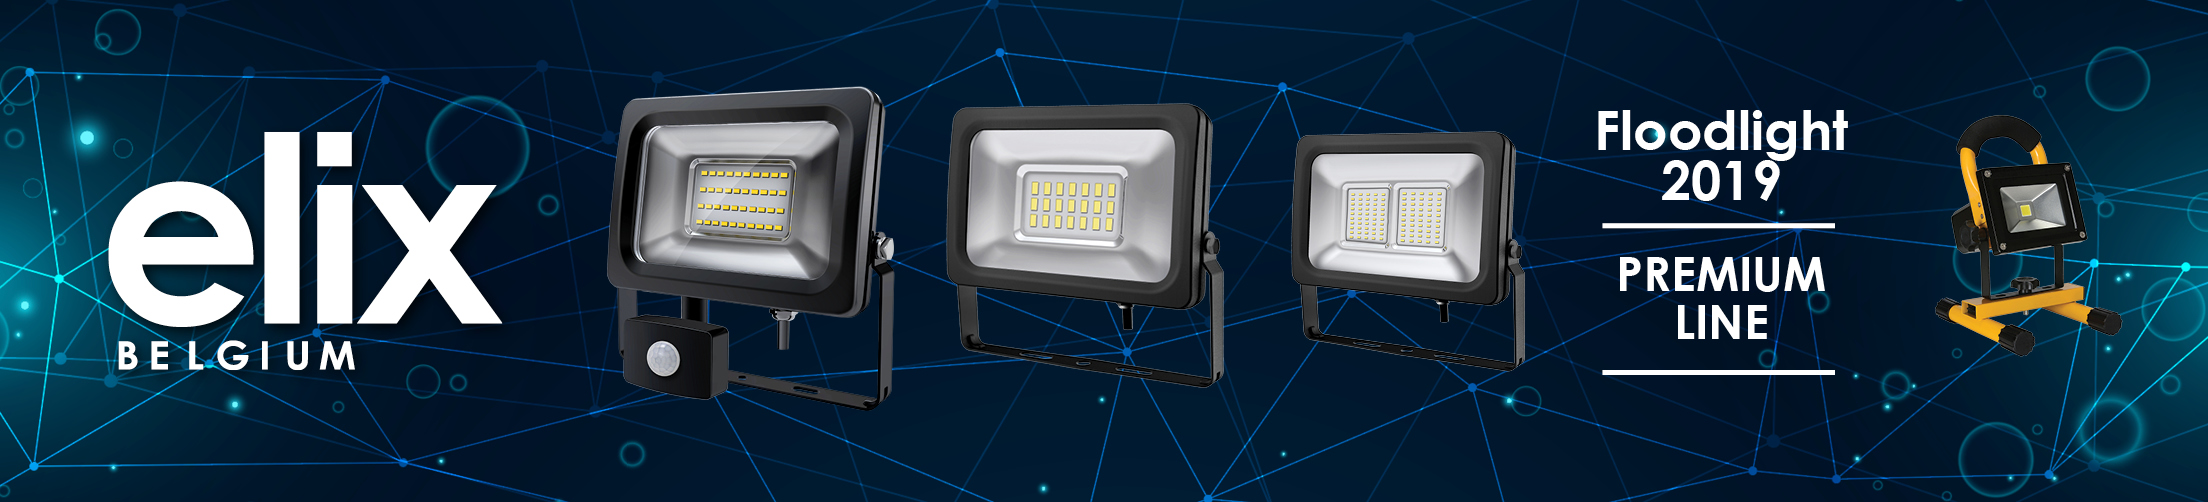 Elix Belgium Floodlight 2019